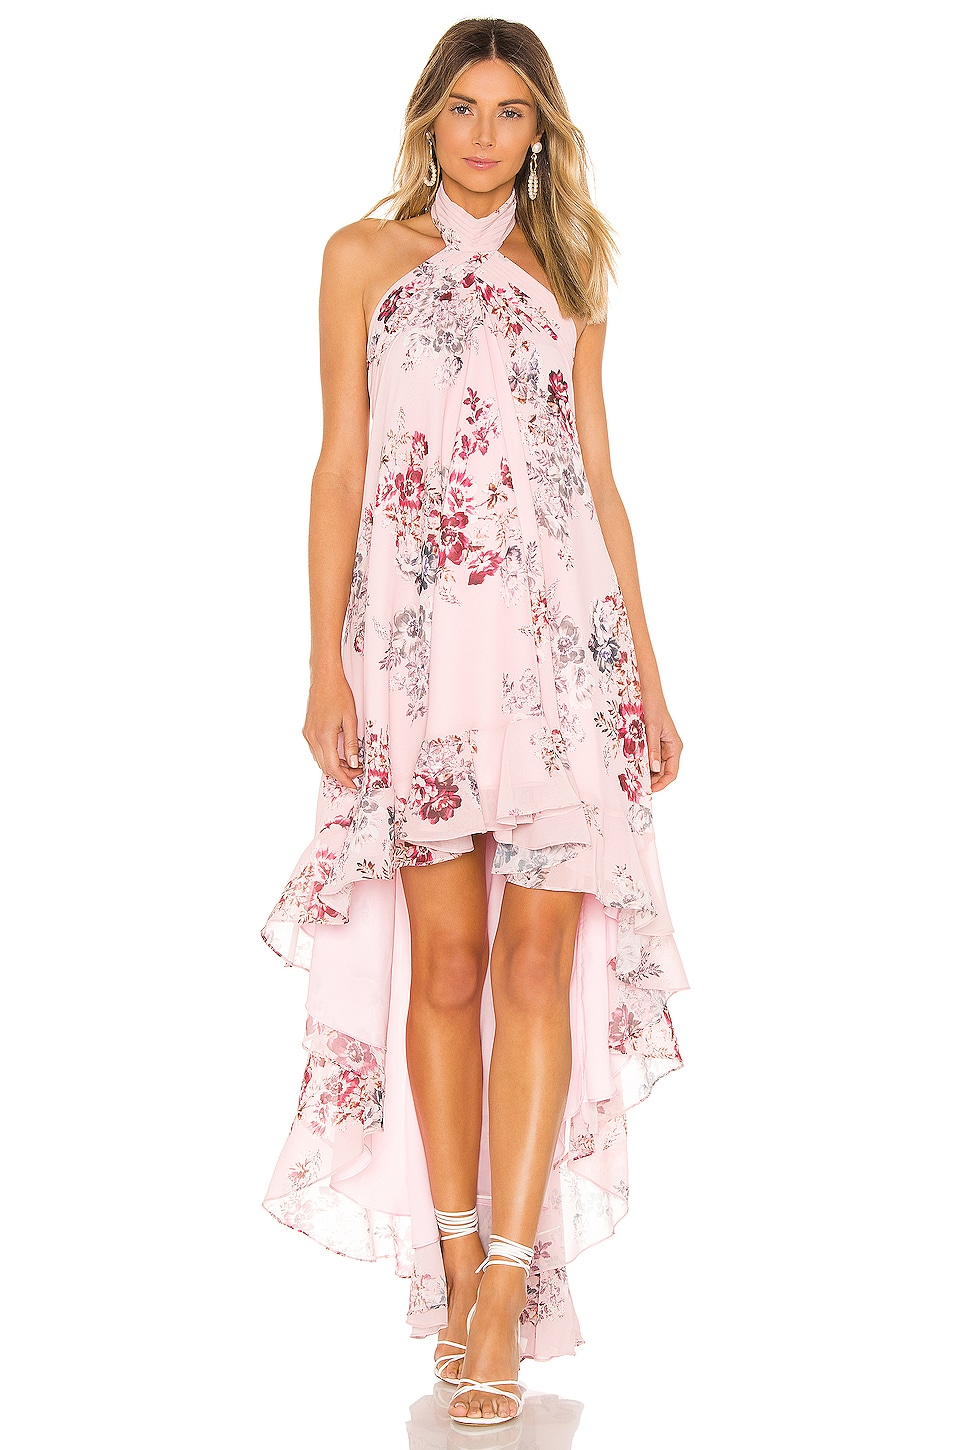 Michael Costello X Revolve Conrad Dress In Pink Floral Revolve Haul of pretty dresses, january sale finds, shoes, bikinis and more! michael costello